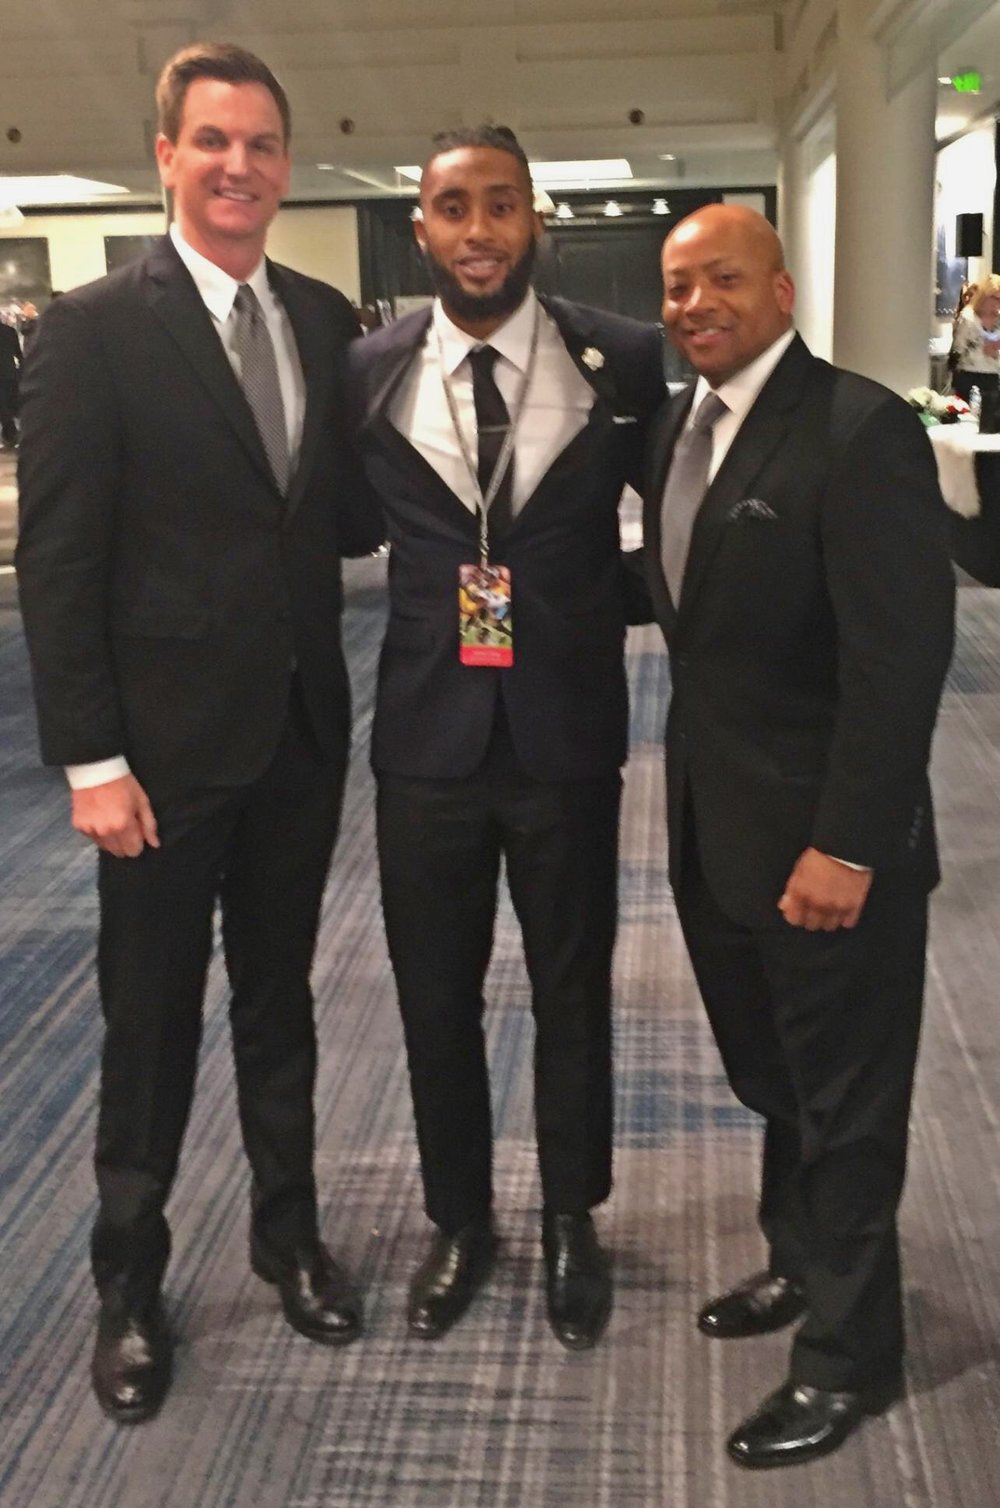 Pictured L to R: James Akins-Chief of Staff, NTF, Aaron Colvin- Cornerback for the Jacksonville Jaguars NTF's Courage House player, and Tony Everett- President & CEO, NTF